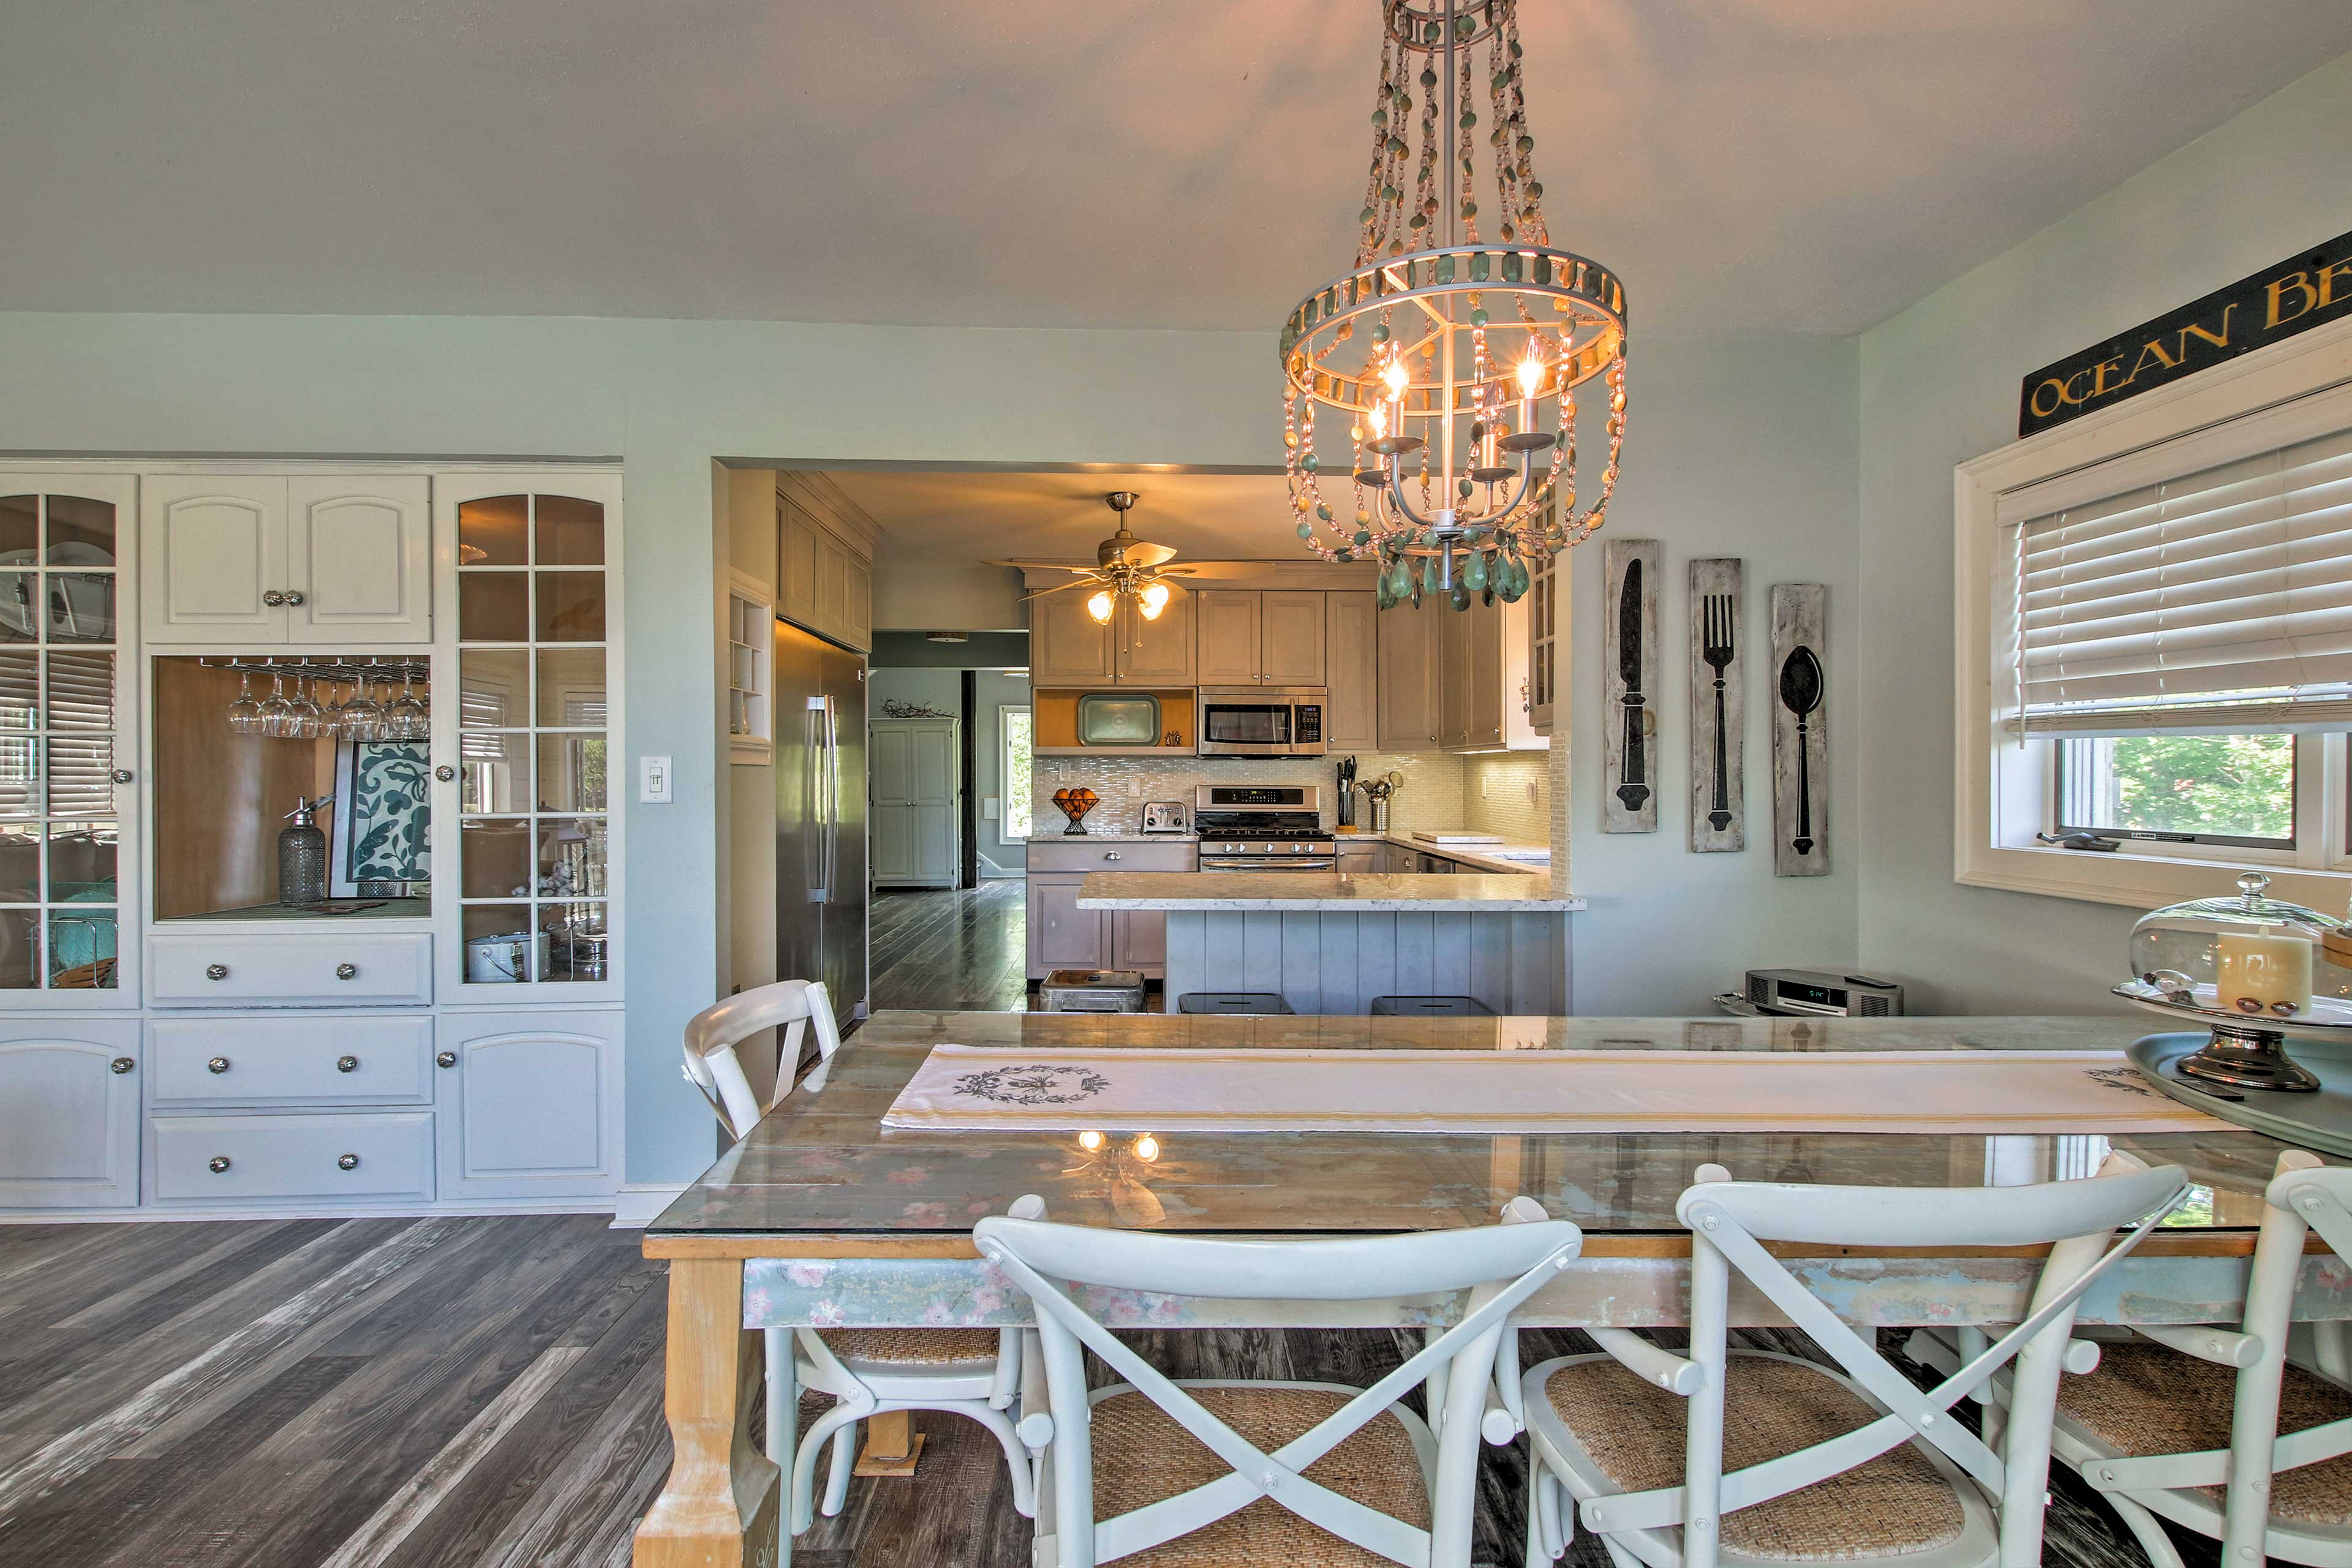 A unique chandelier highlights the dining area.